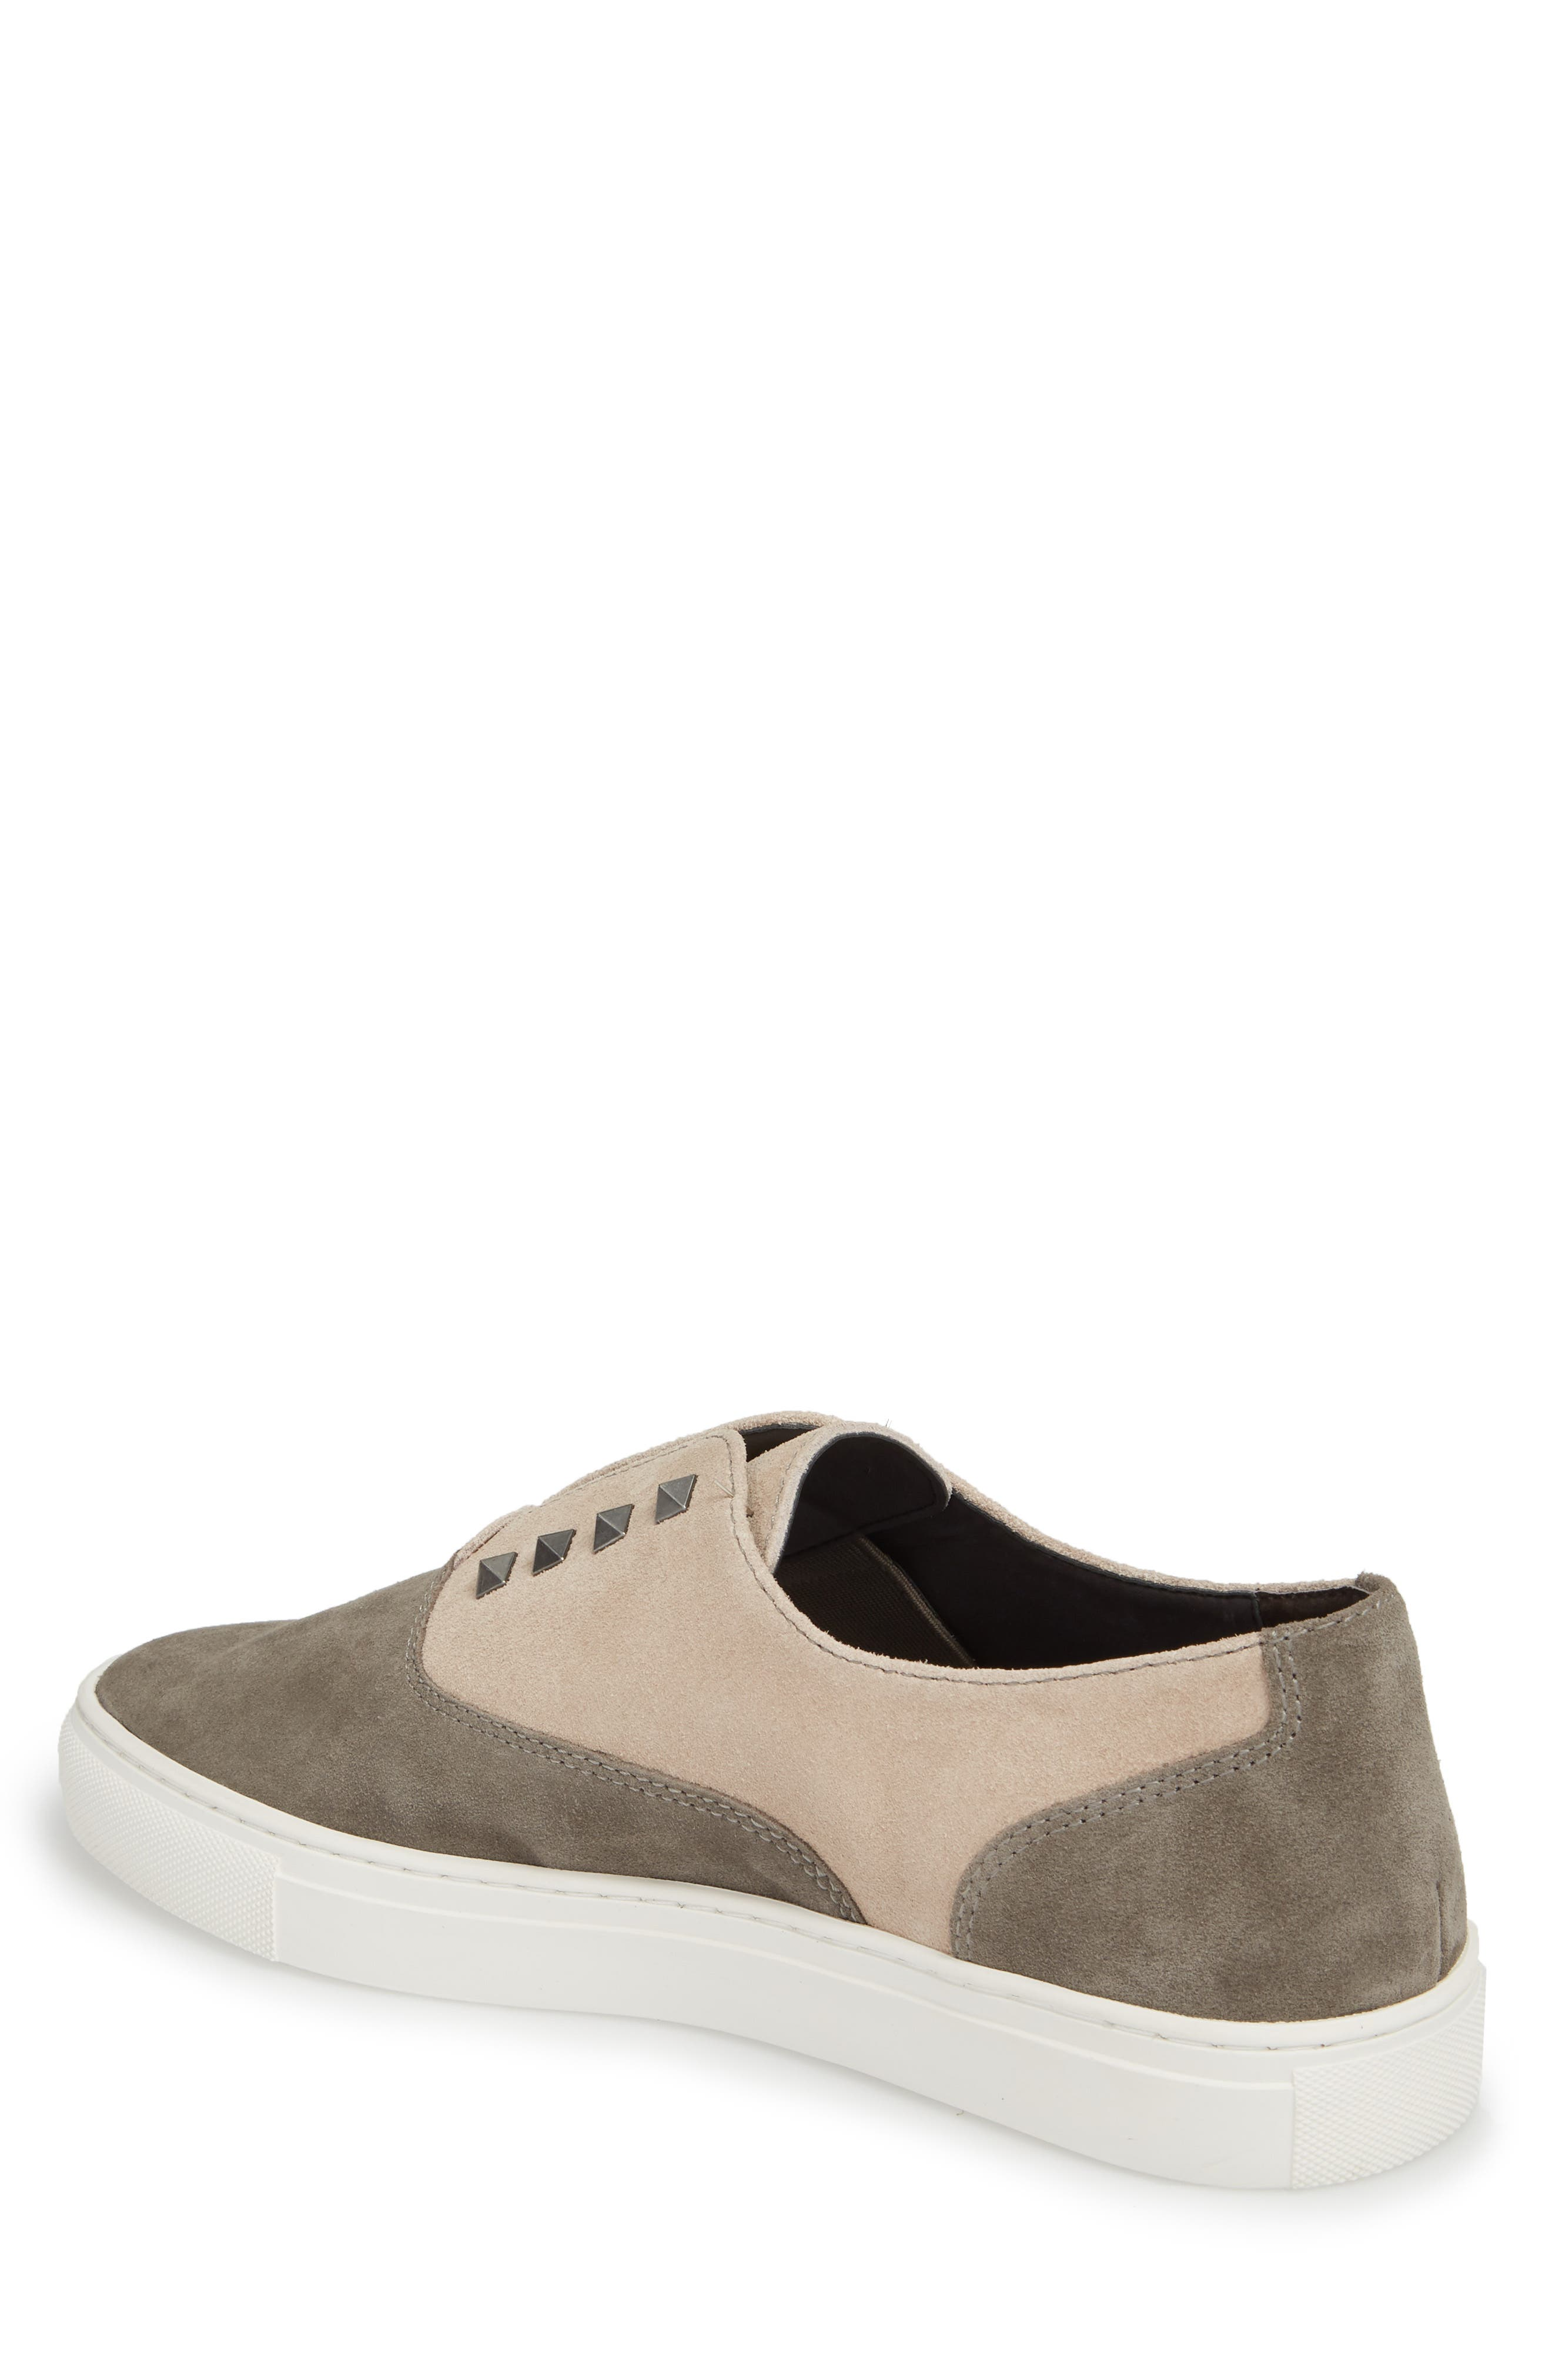 Aryo Studded Laceless Sneaker,                             Alternate thumbnail 2, color,                             Chocolate/ Sand Suede